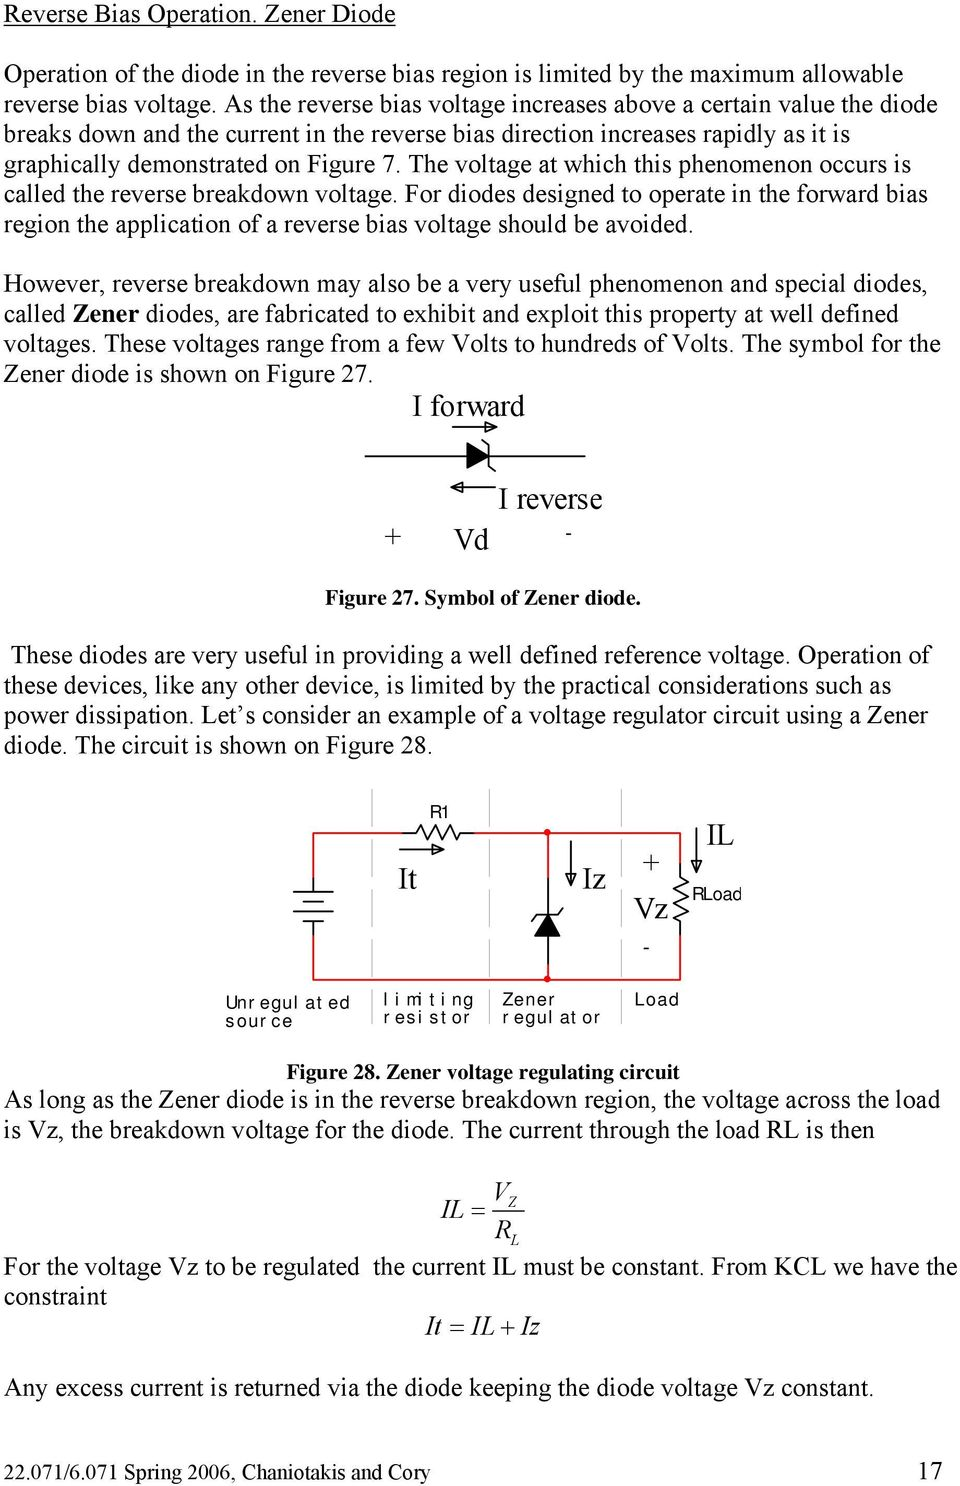 The voltage at which this phenomenon occurs is called the reverse breakdown voltage.